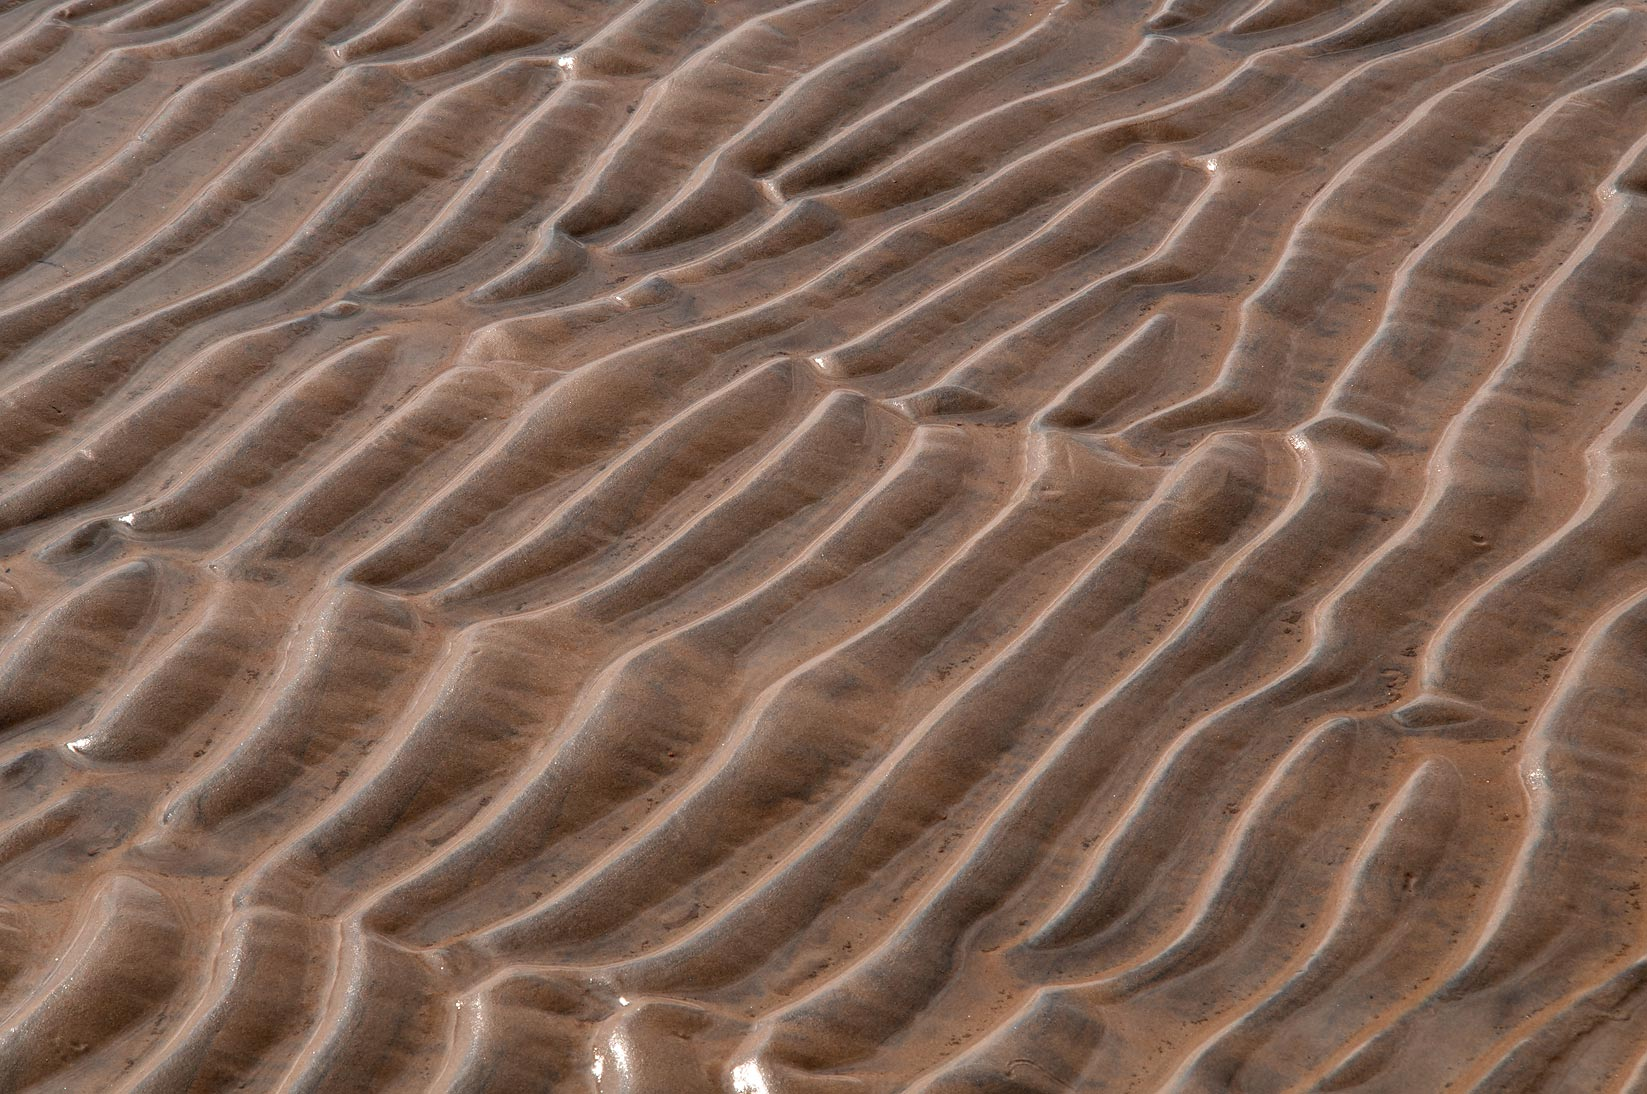 Sand ripples on a beach near Sestroretsk, a suburb of St.Petersburg. Russia